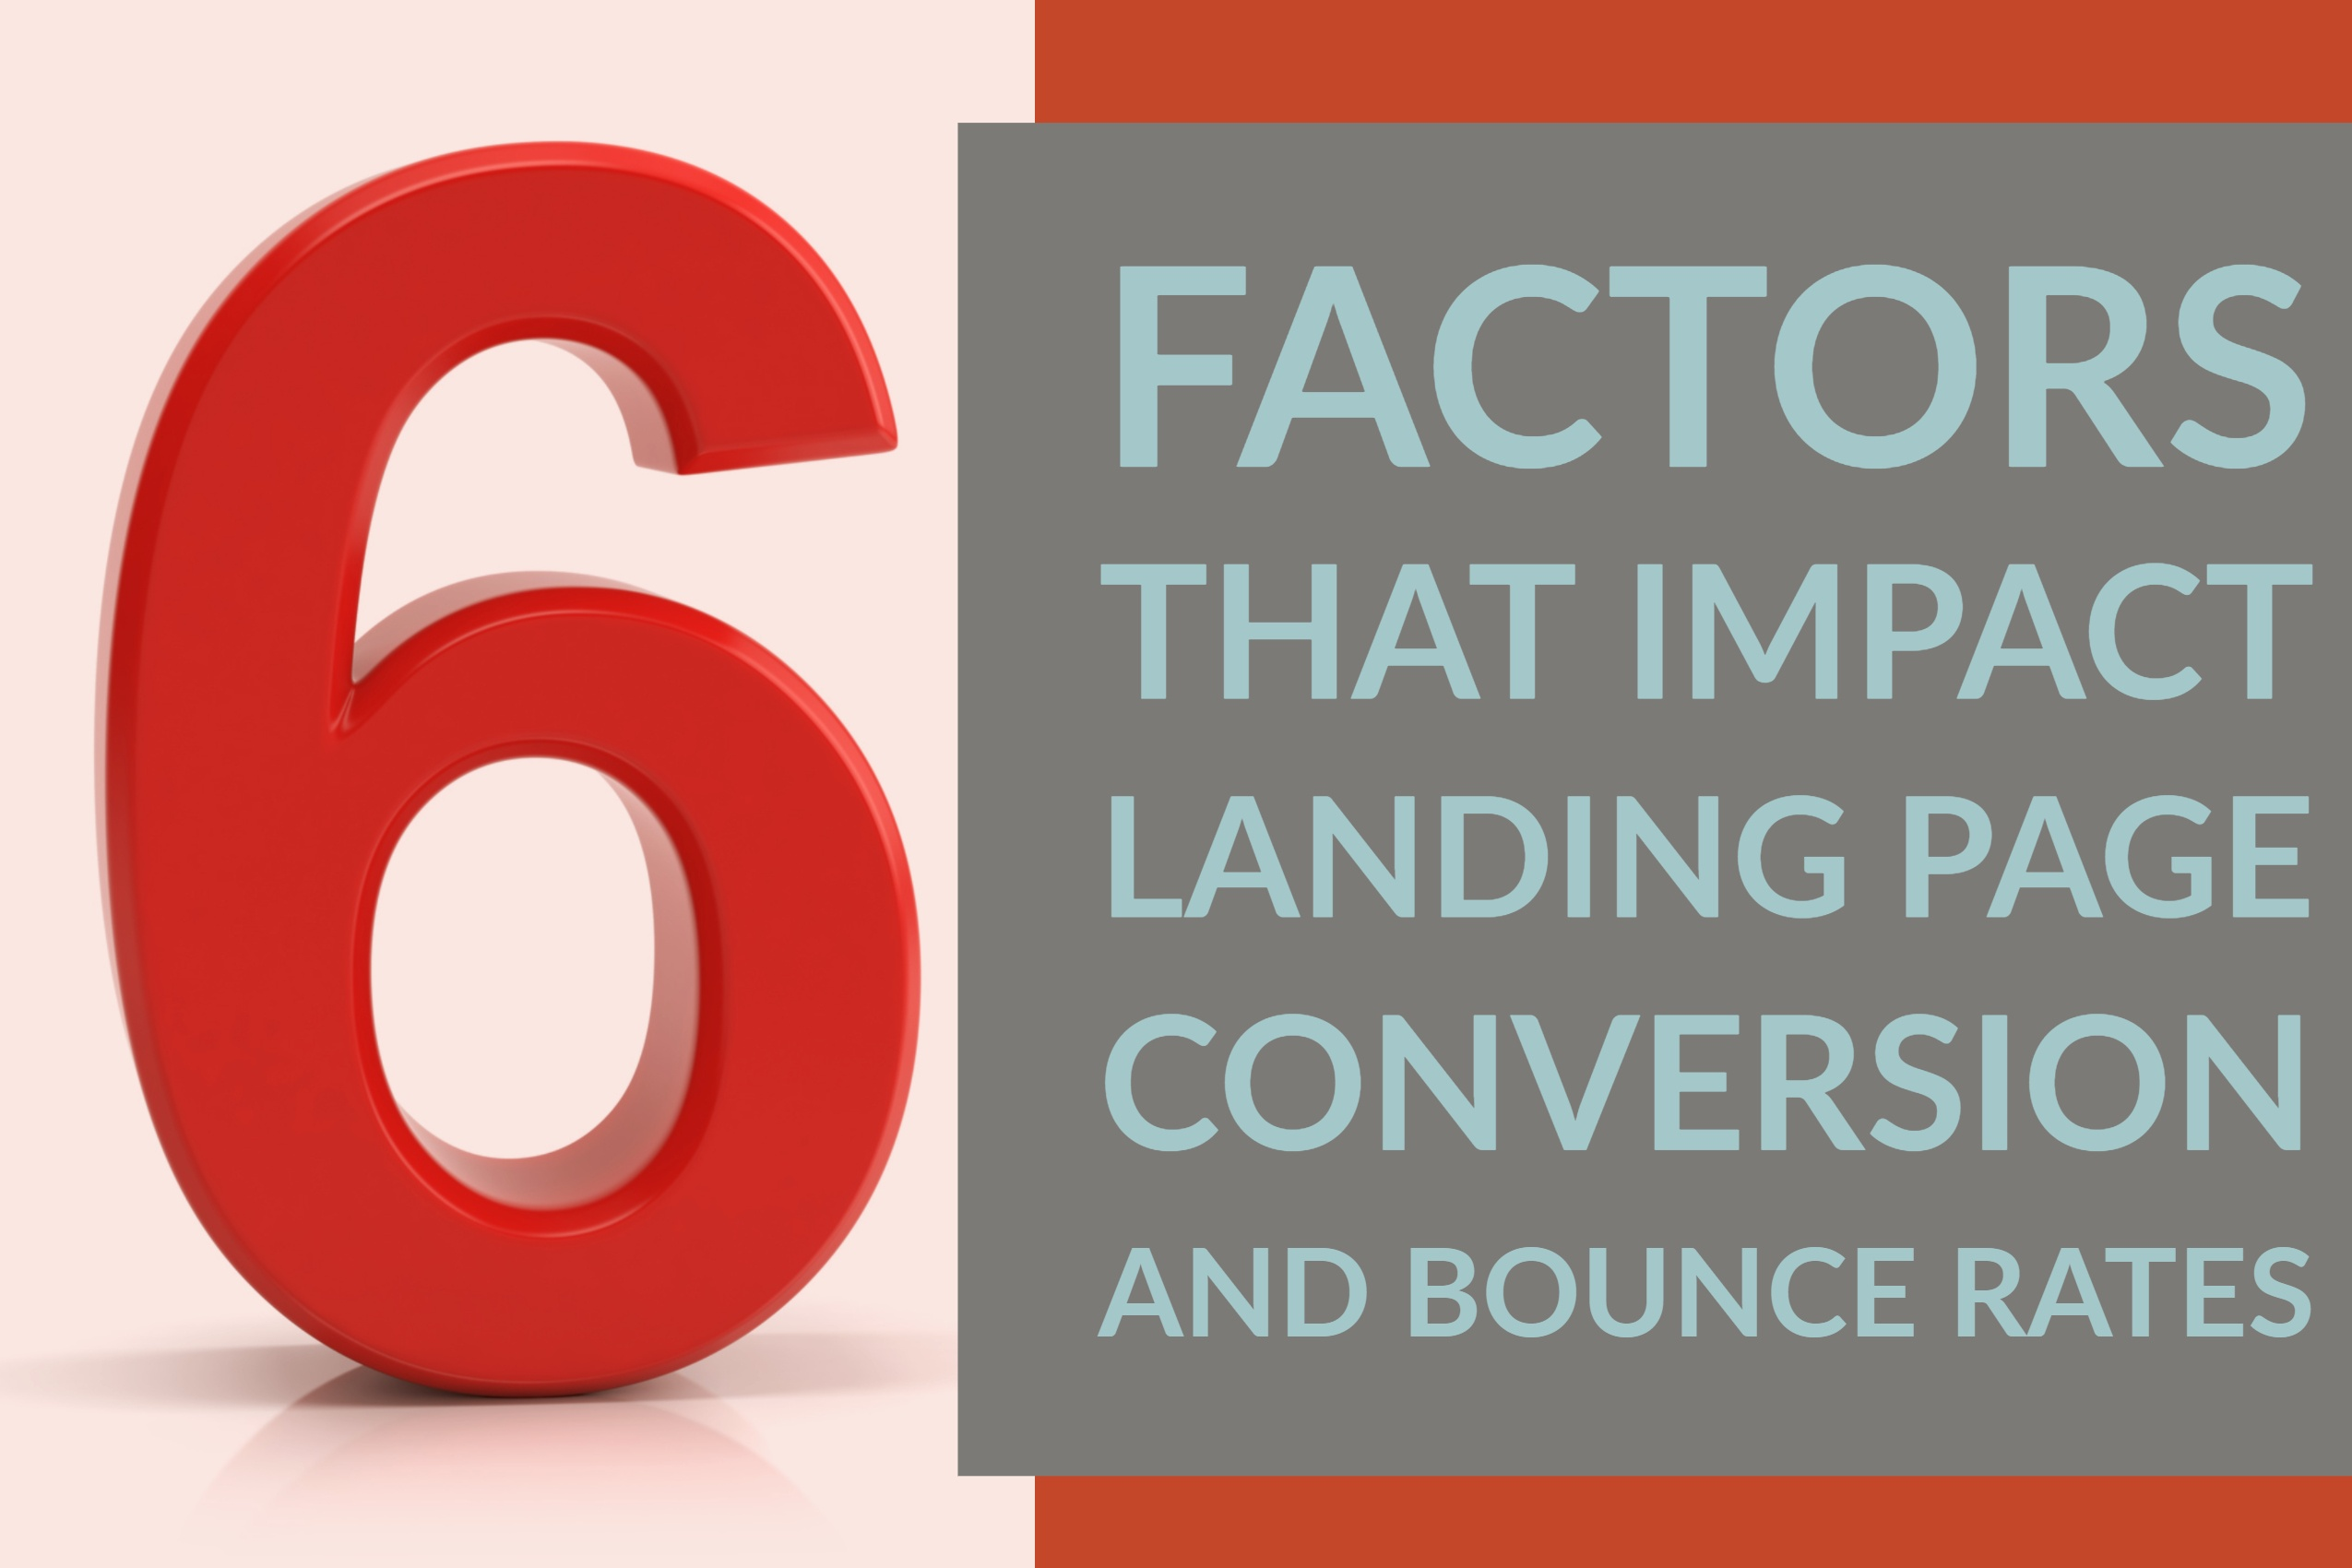 6 Factors That Impact Landing Page Conversion and Bounce Rates